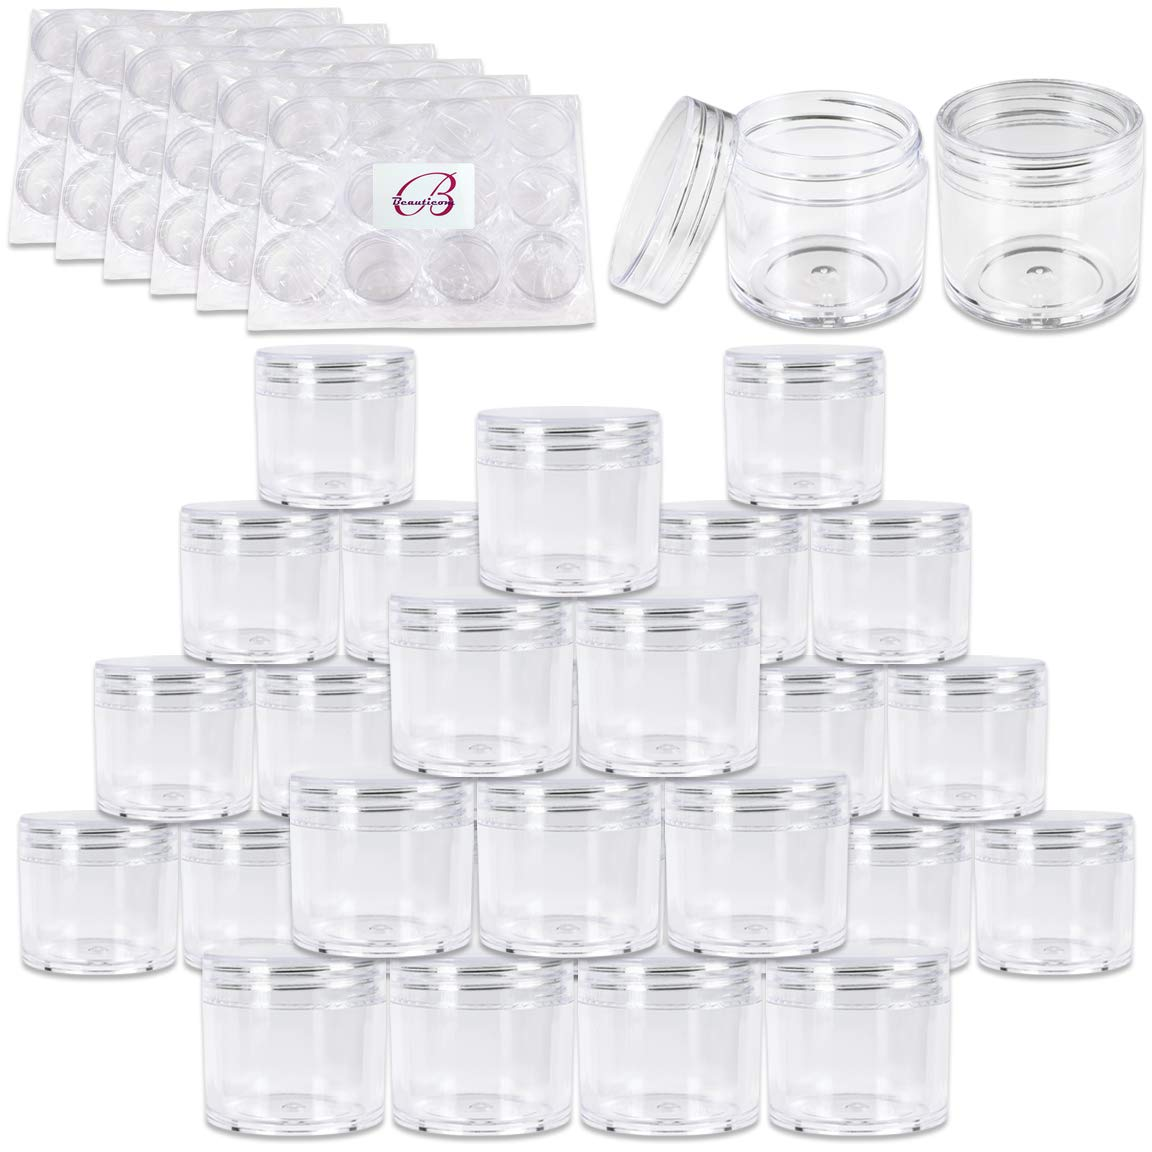 Beauticom 180 Pieces 30G/30ML(1 Oz) Thick Wall Round CLEAR Plastic Container Jars with Clear Flat Top Lids - Leak-Proof Jar - BPA Free by Beauticom